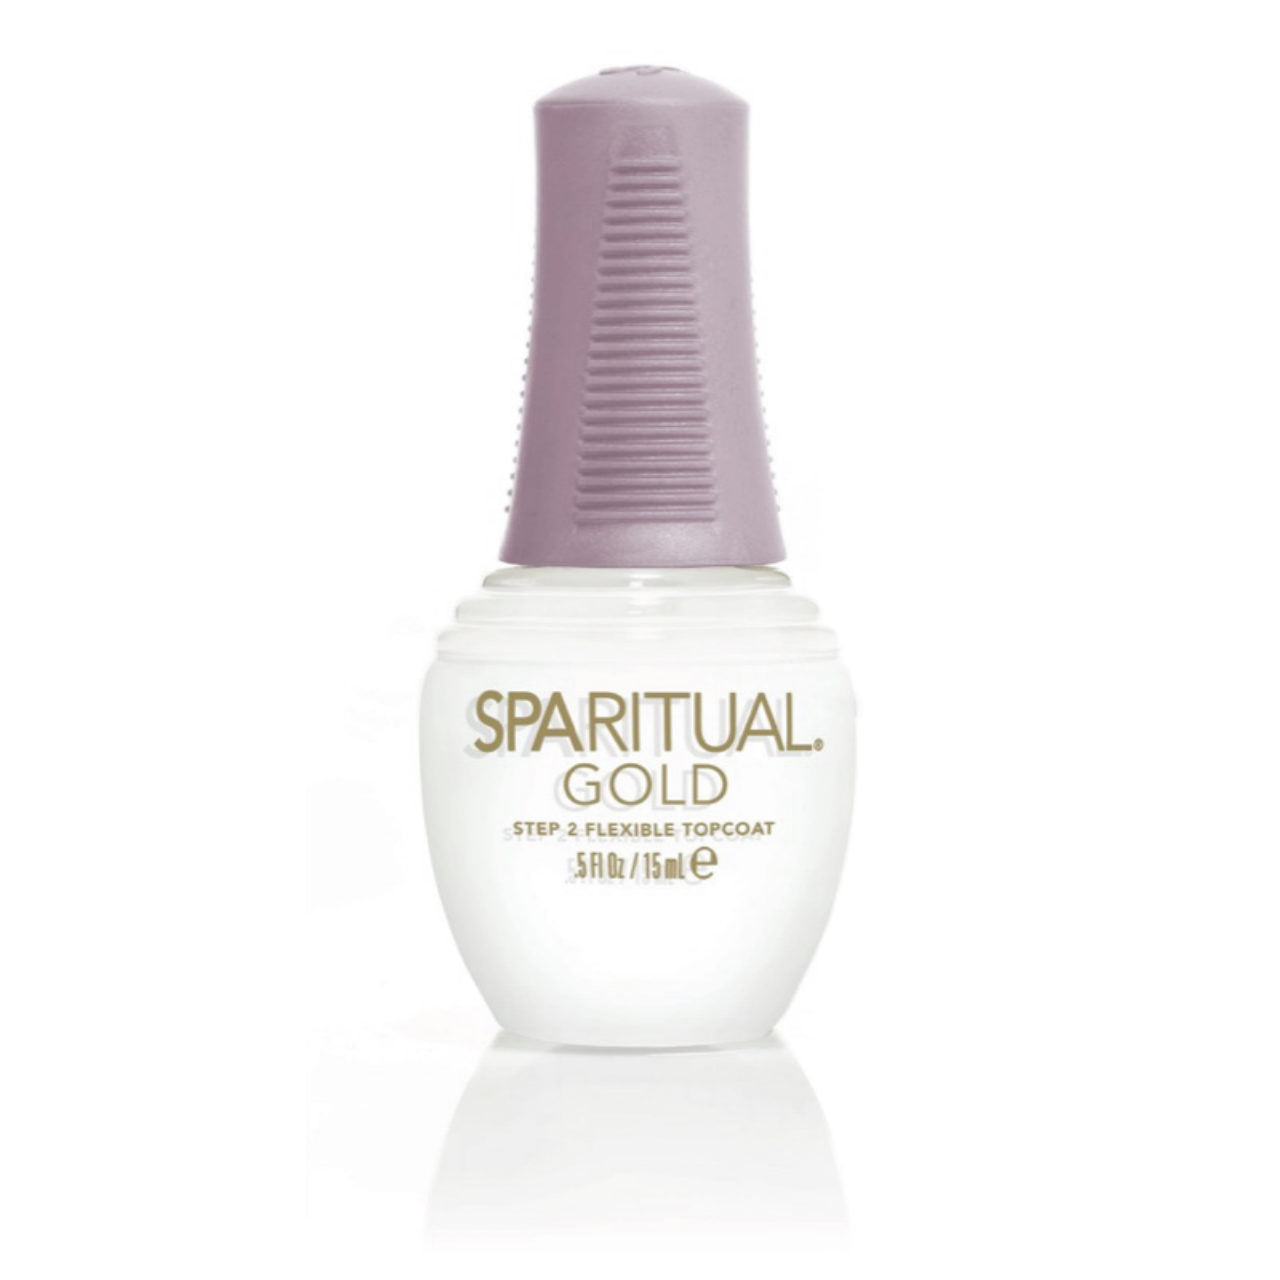 SPARITUAL GOLD Flexible Topcoat